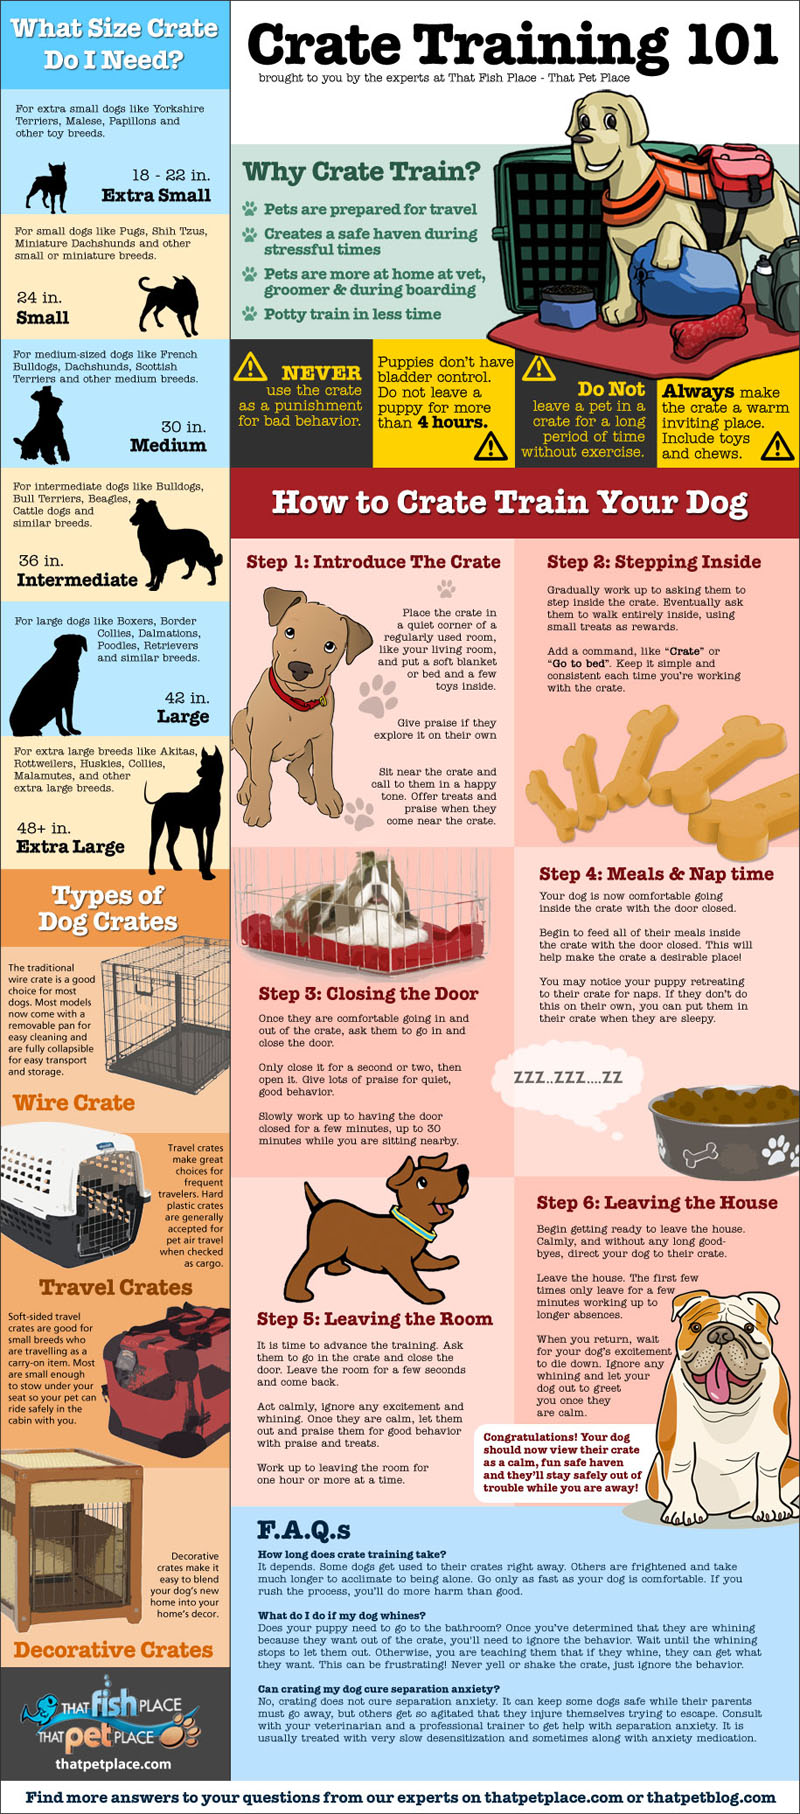 3 easy steps for crate training